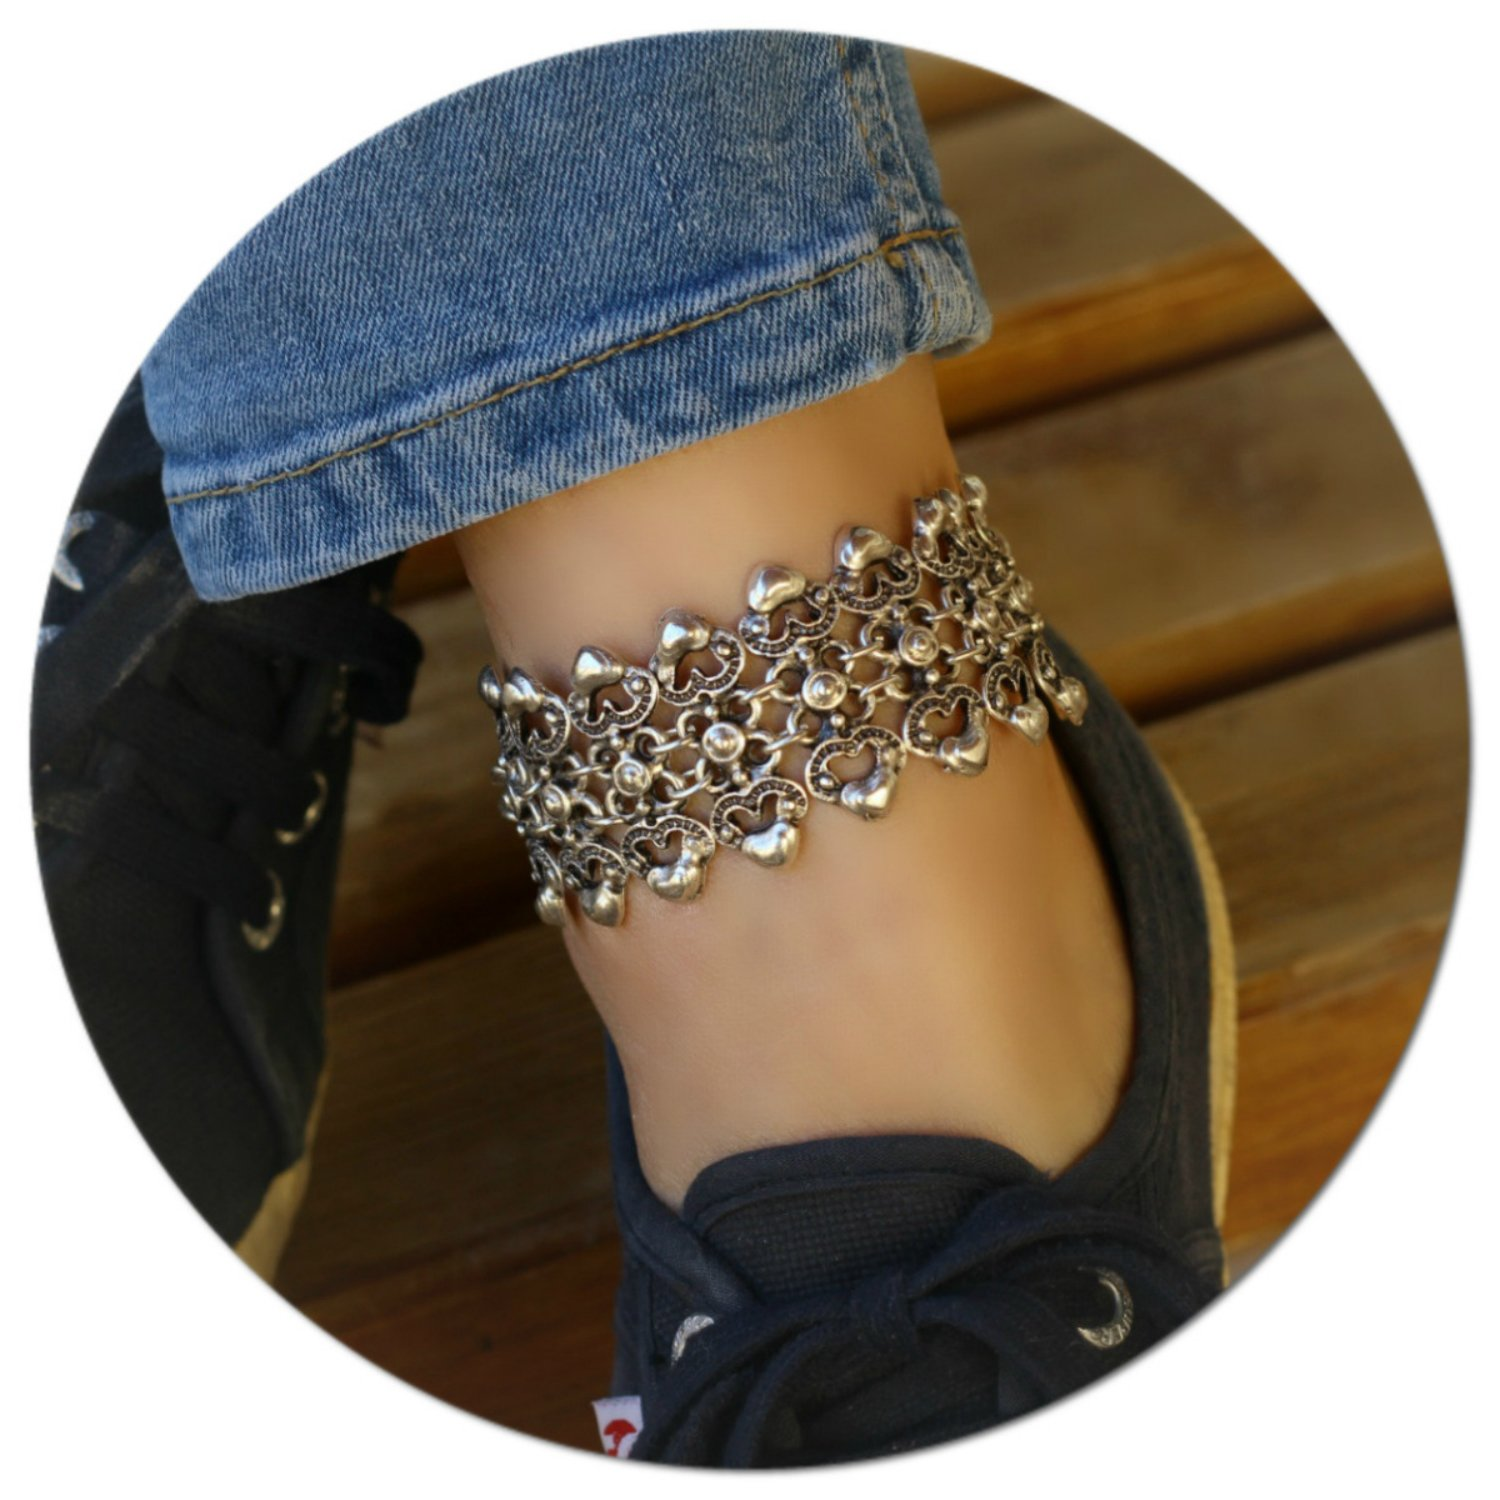 Silver Plated Boho Anklet Beach Summer Ankle Bracelet Foot Chain Jewelry Adjustable Barefoot Sandal